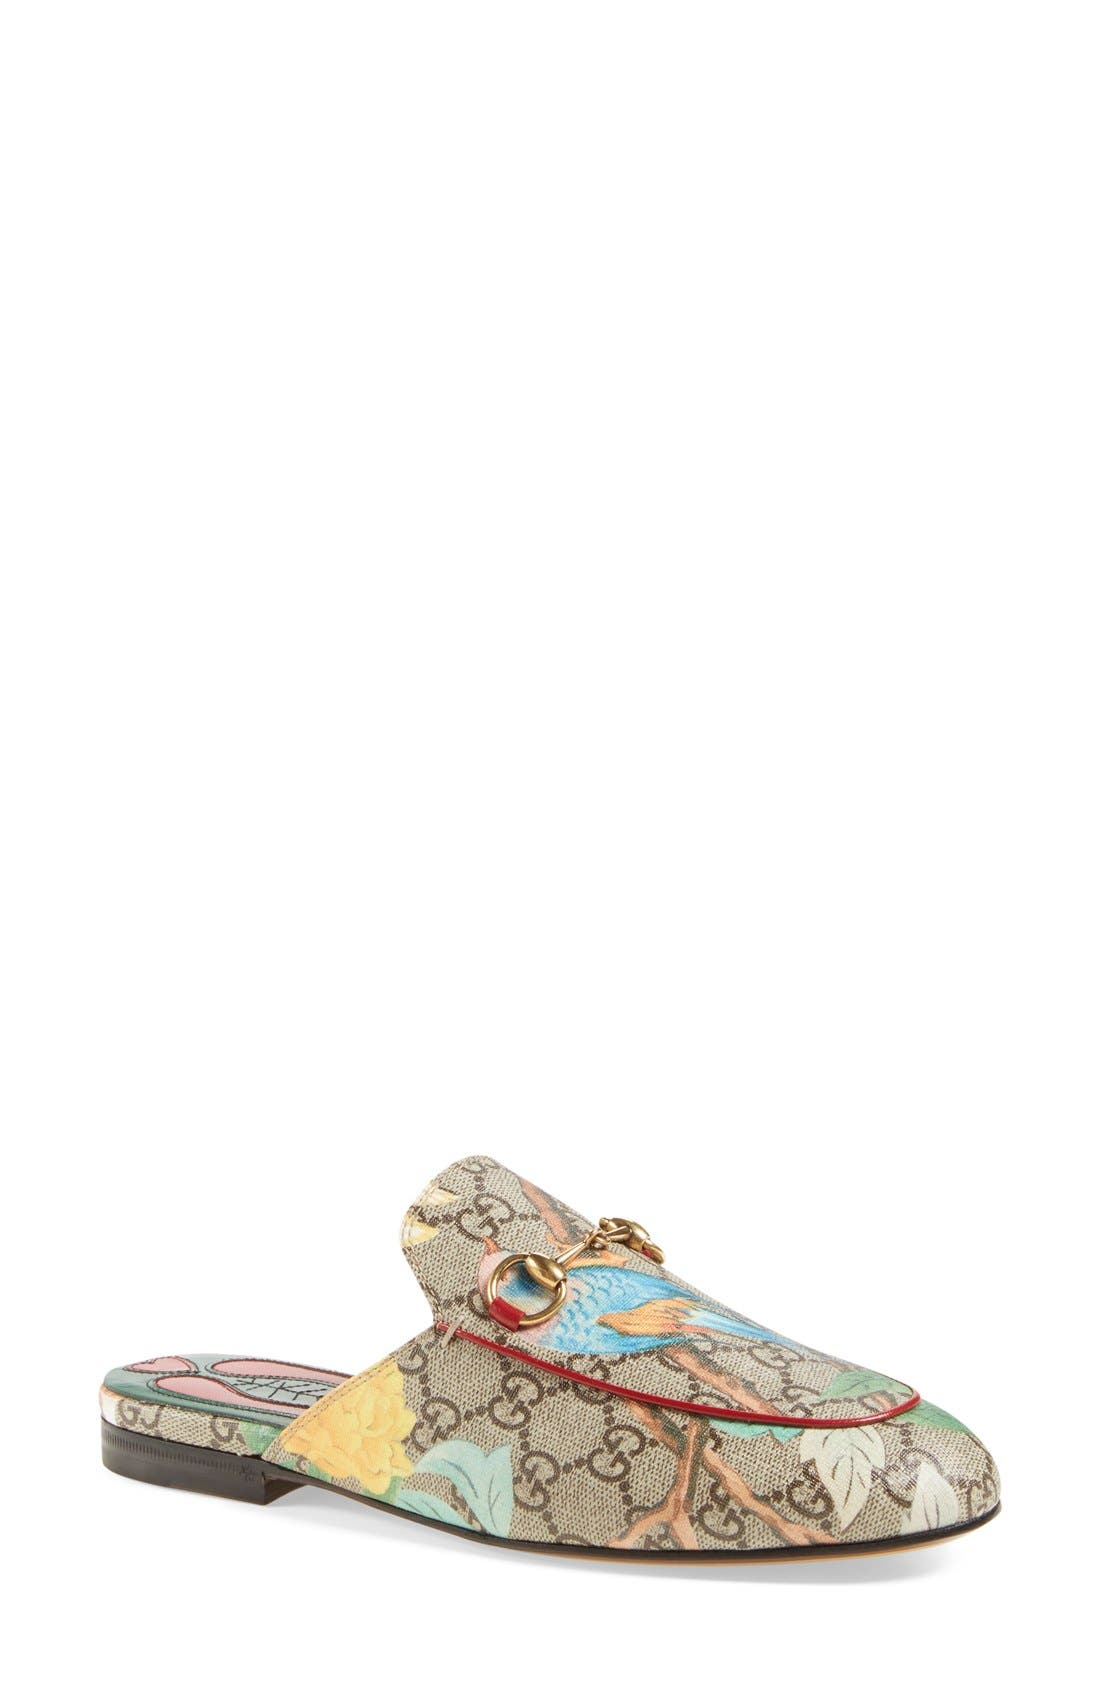 Gucci 'Princetown' Floral Print Mule Loafer (Women)